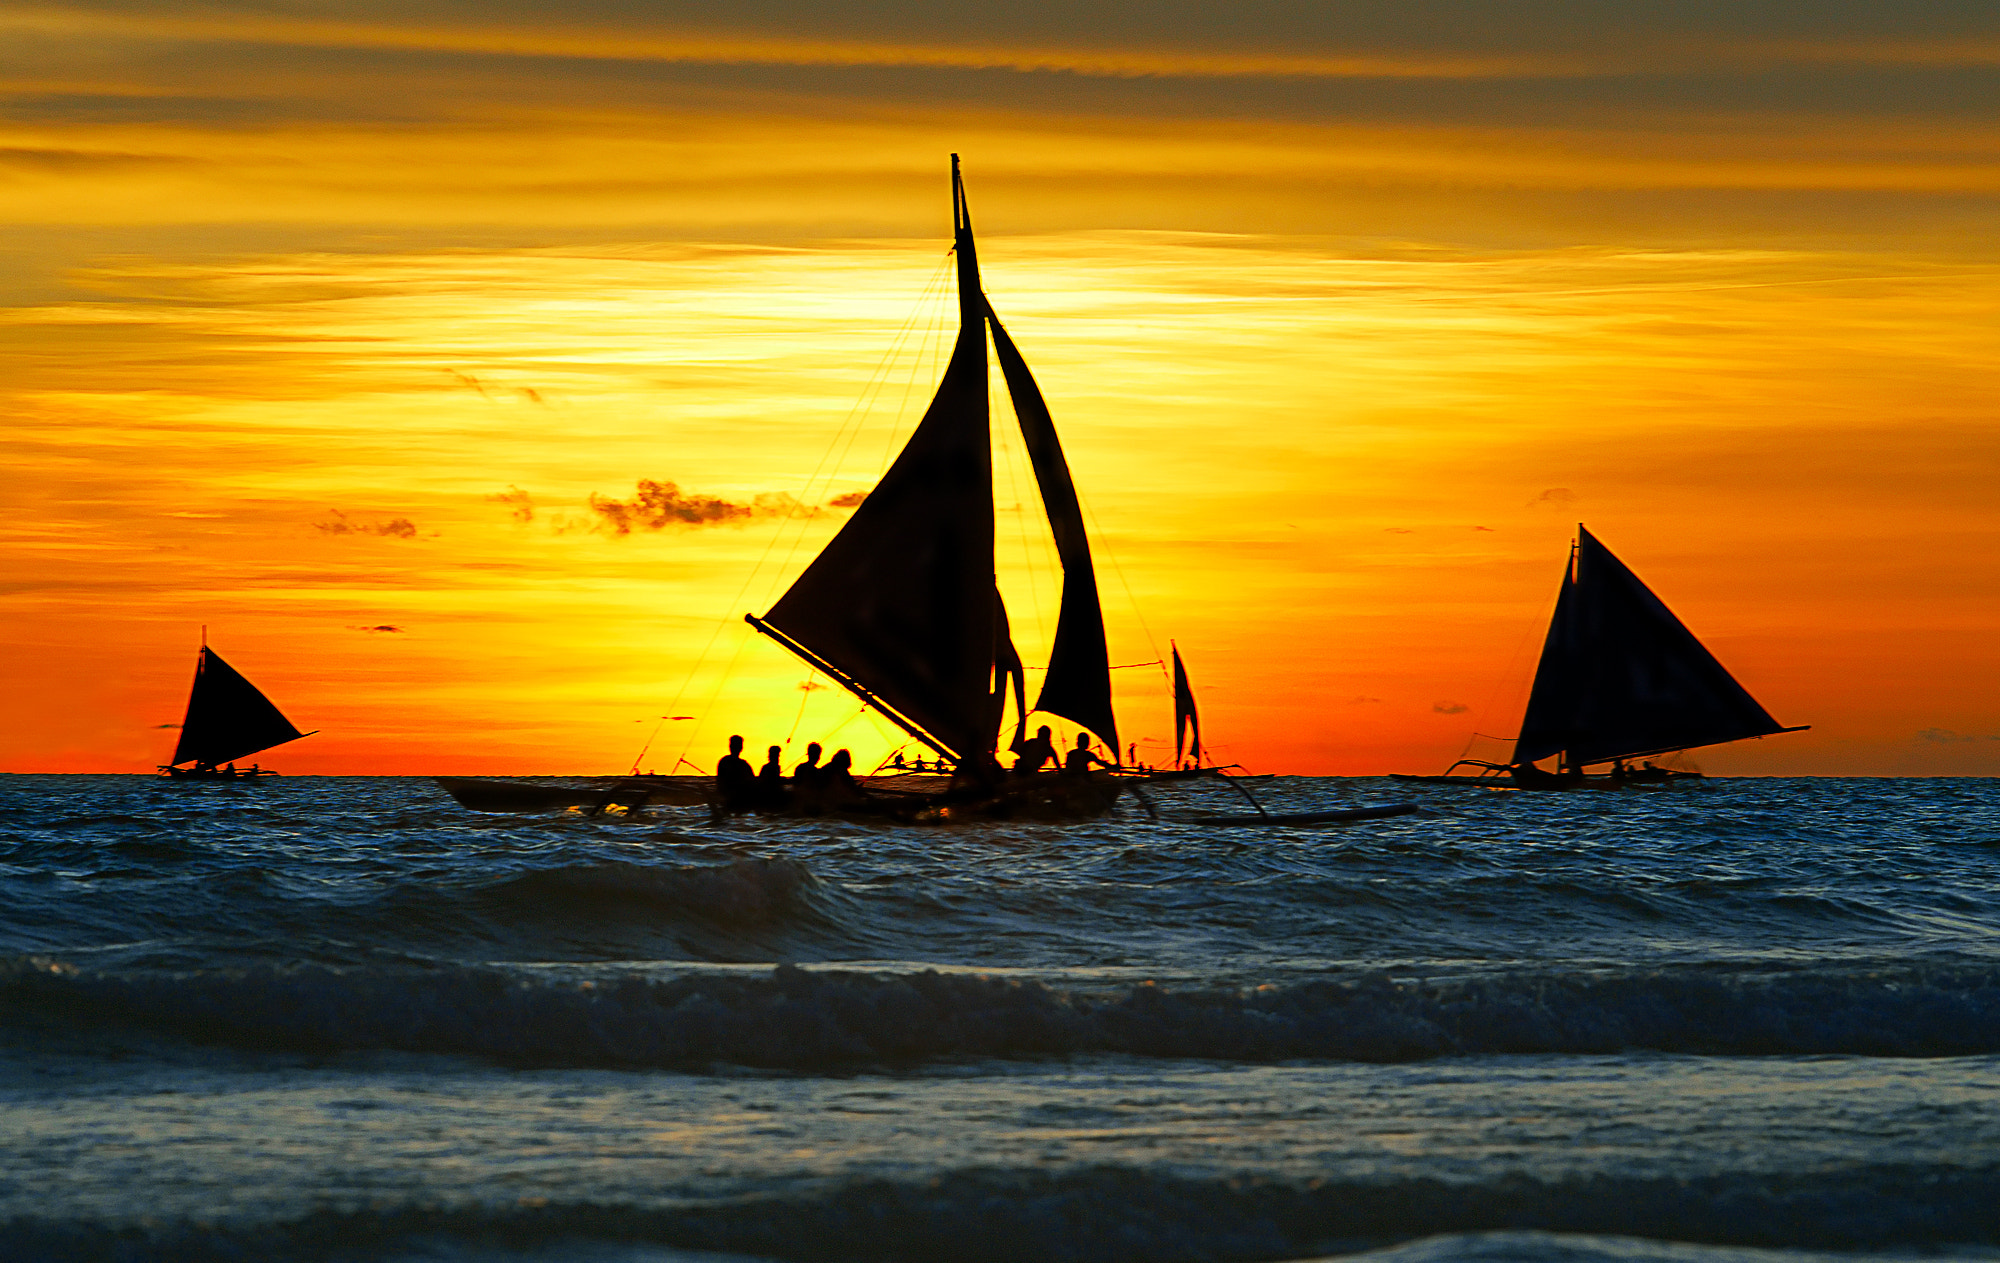 Photograph Sunset sails by Yury Barsukoff on 500px